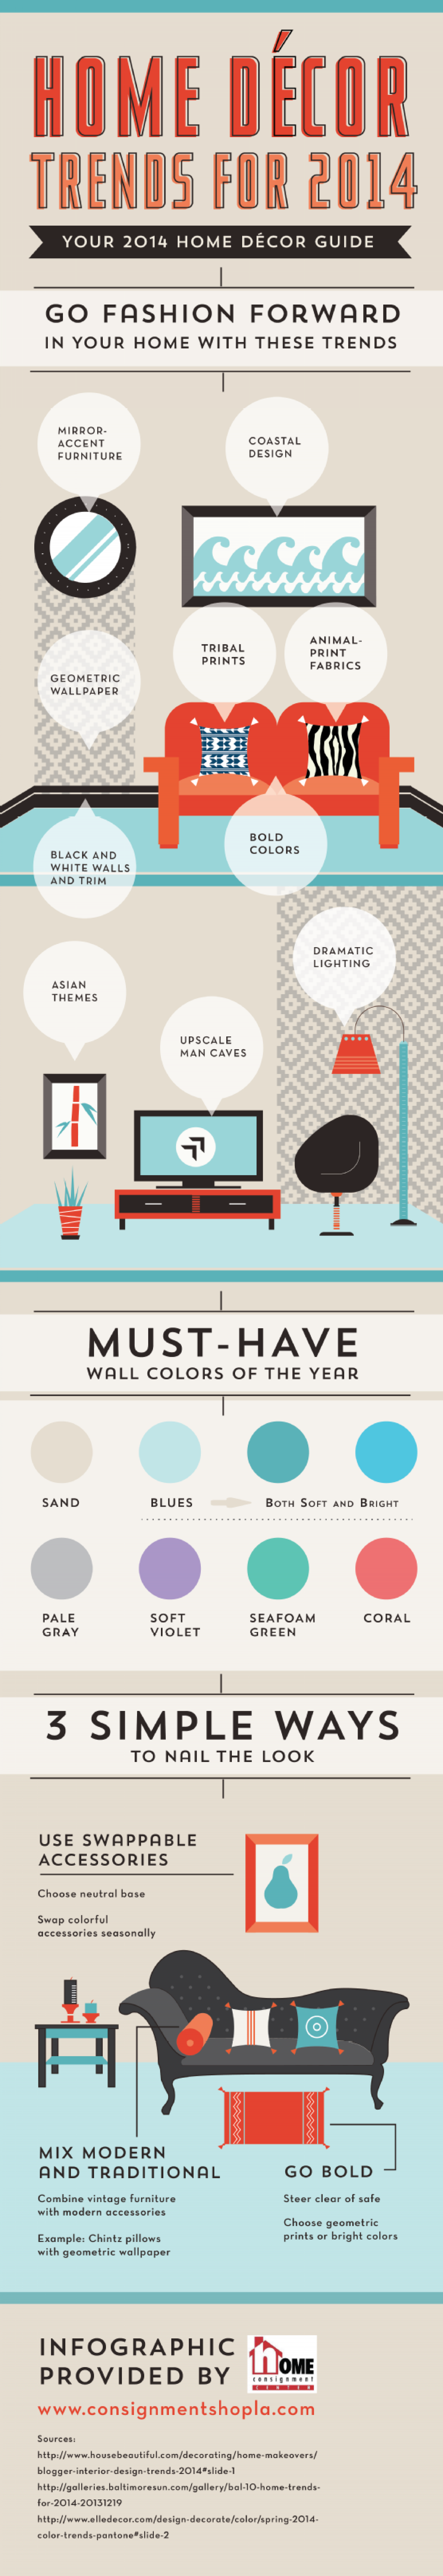 Home Décor Trends for 2014: Your 2014 Home Décor Guide Infographic